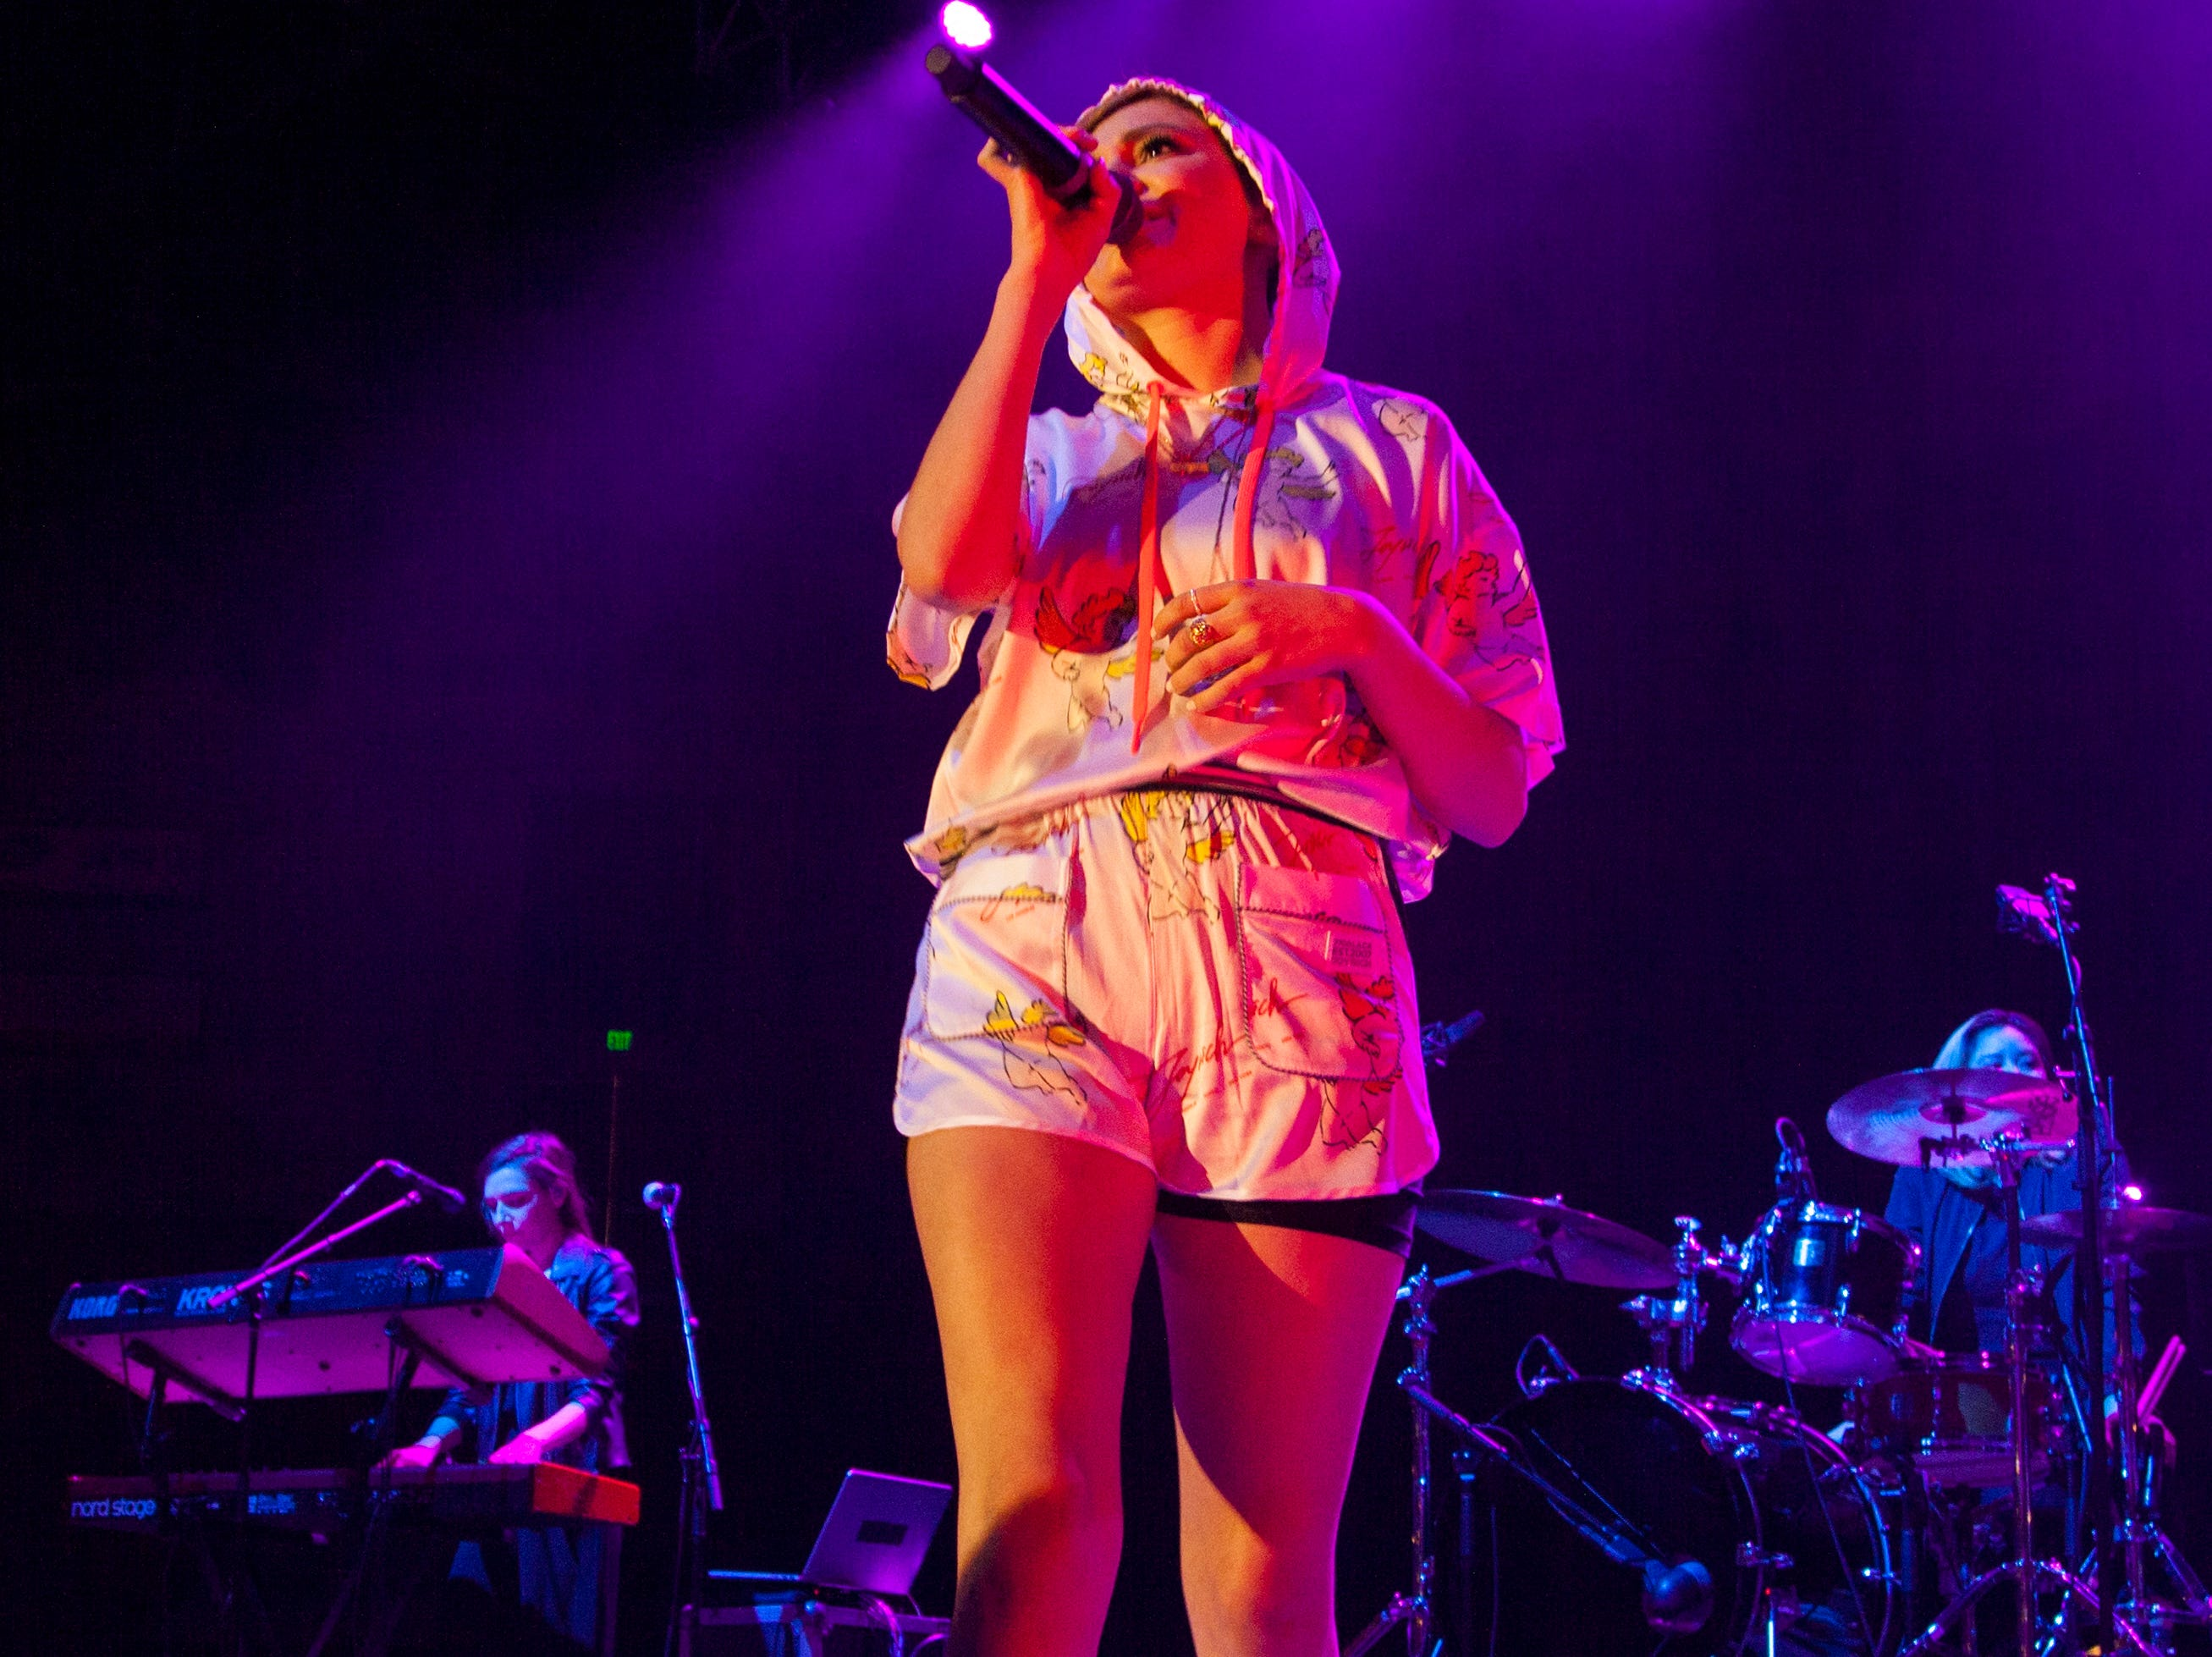 Daya performs at the DSU Burns Arena Friday, Nov. 2, 2018.